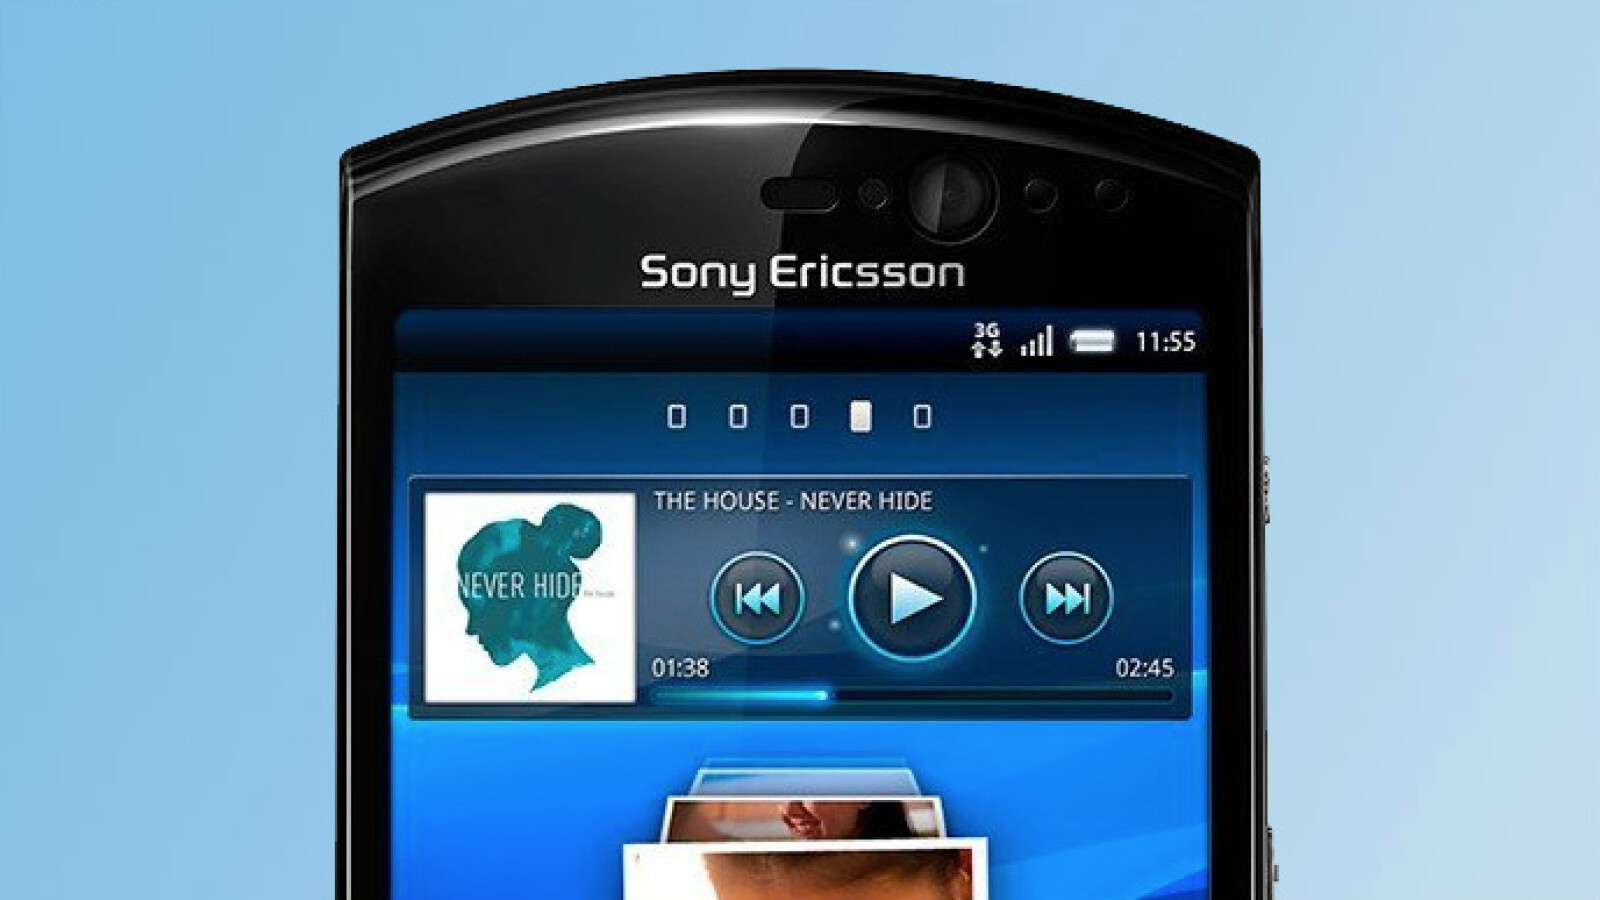 g nstiges multimedia smartphone sony ericsson xperia neo im test netzwelt. Black Bedroom Furniture Sets. Home Design Ideas